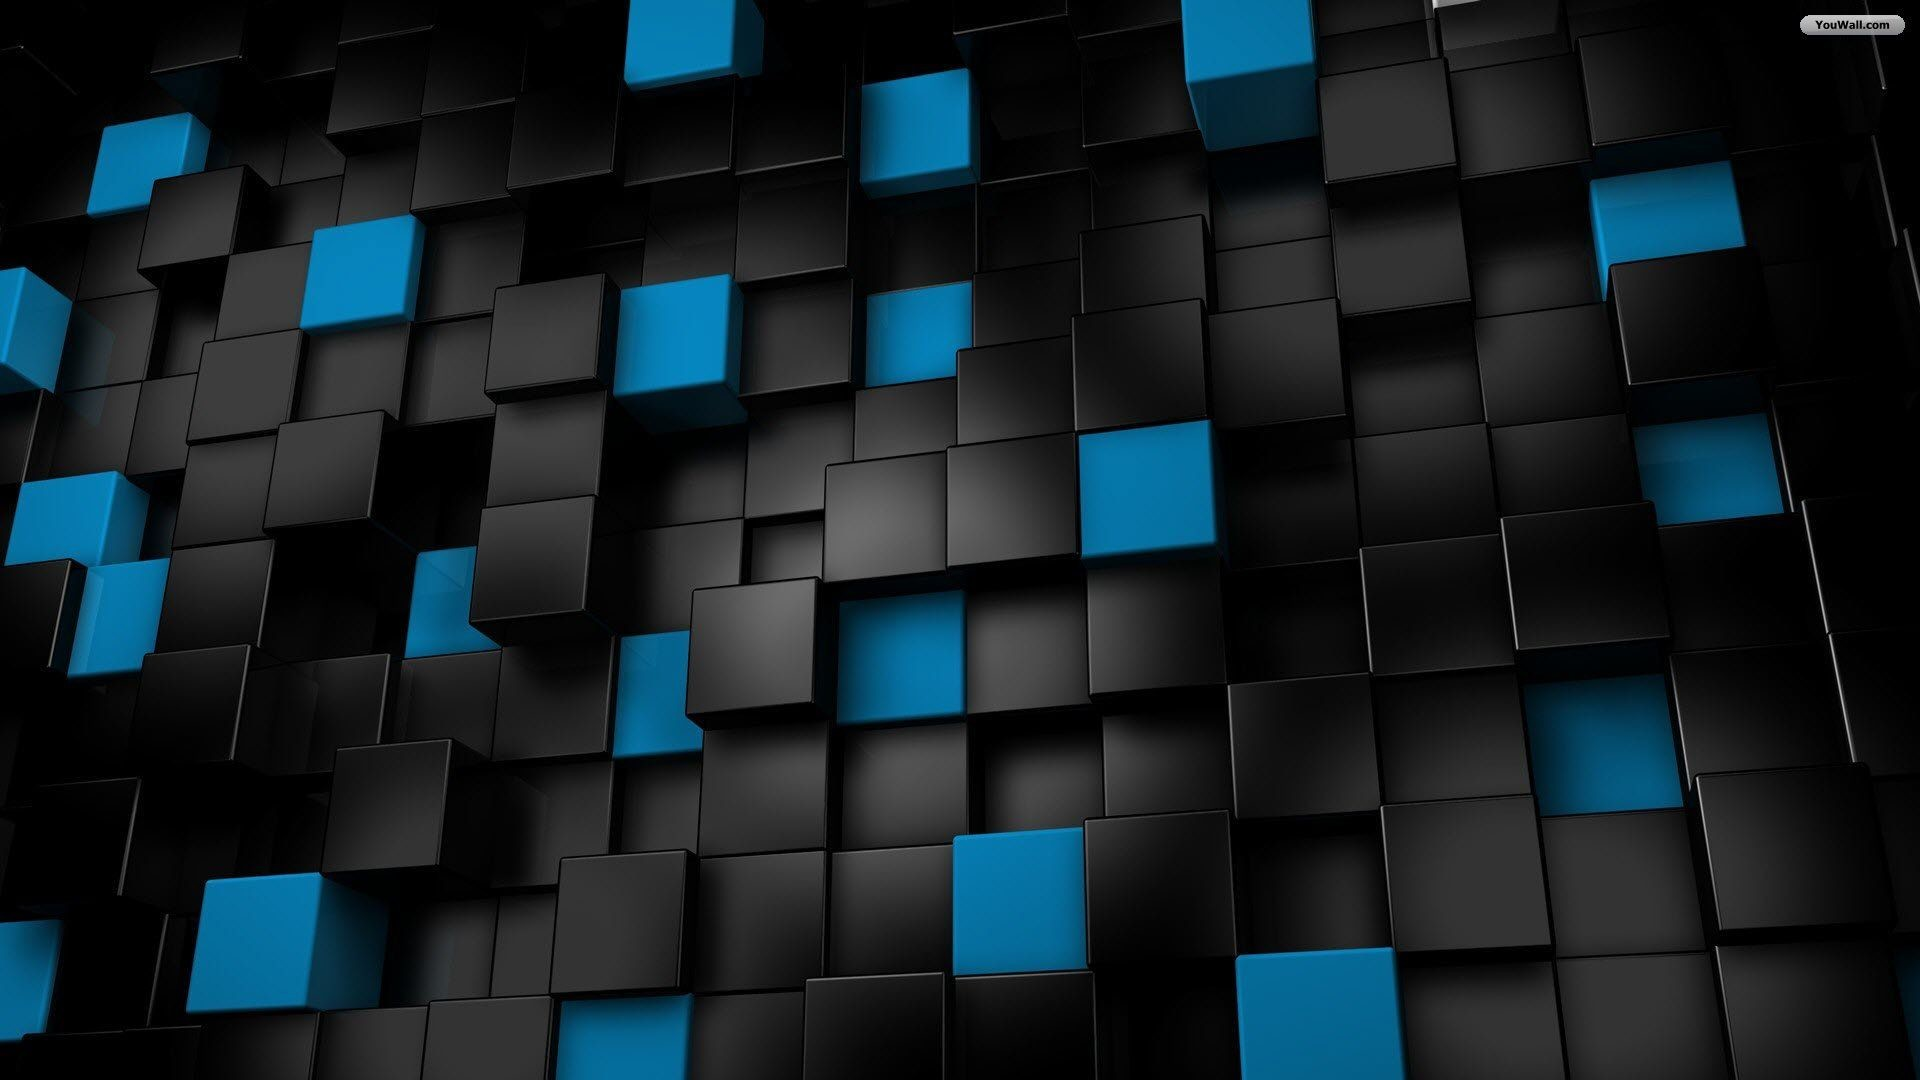 Black and Blue HD Desktop Background Wallpapers 2240 – HD .